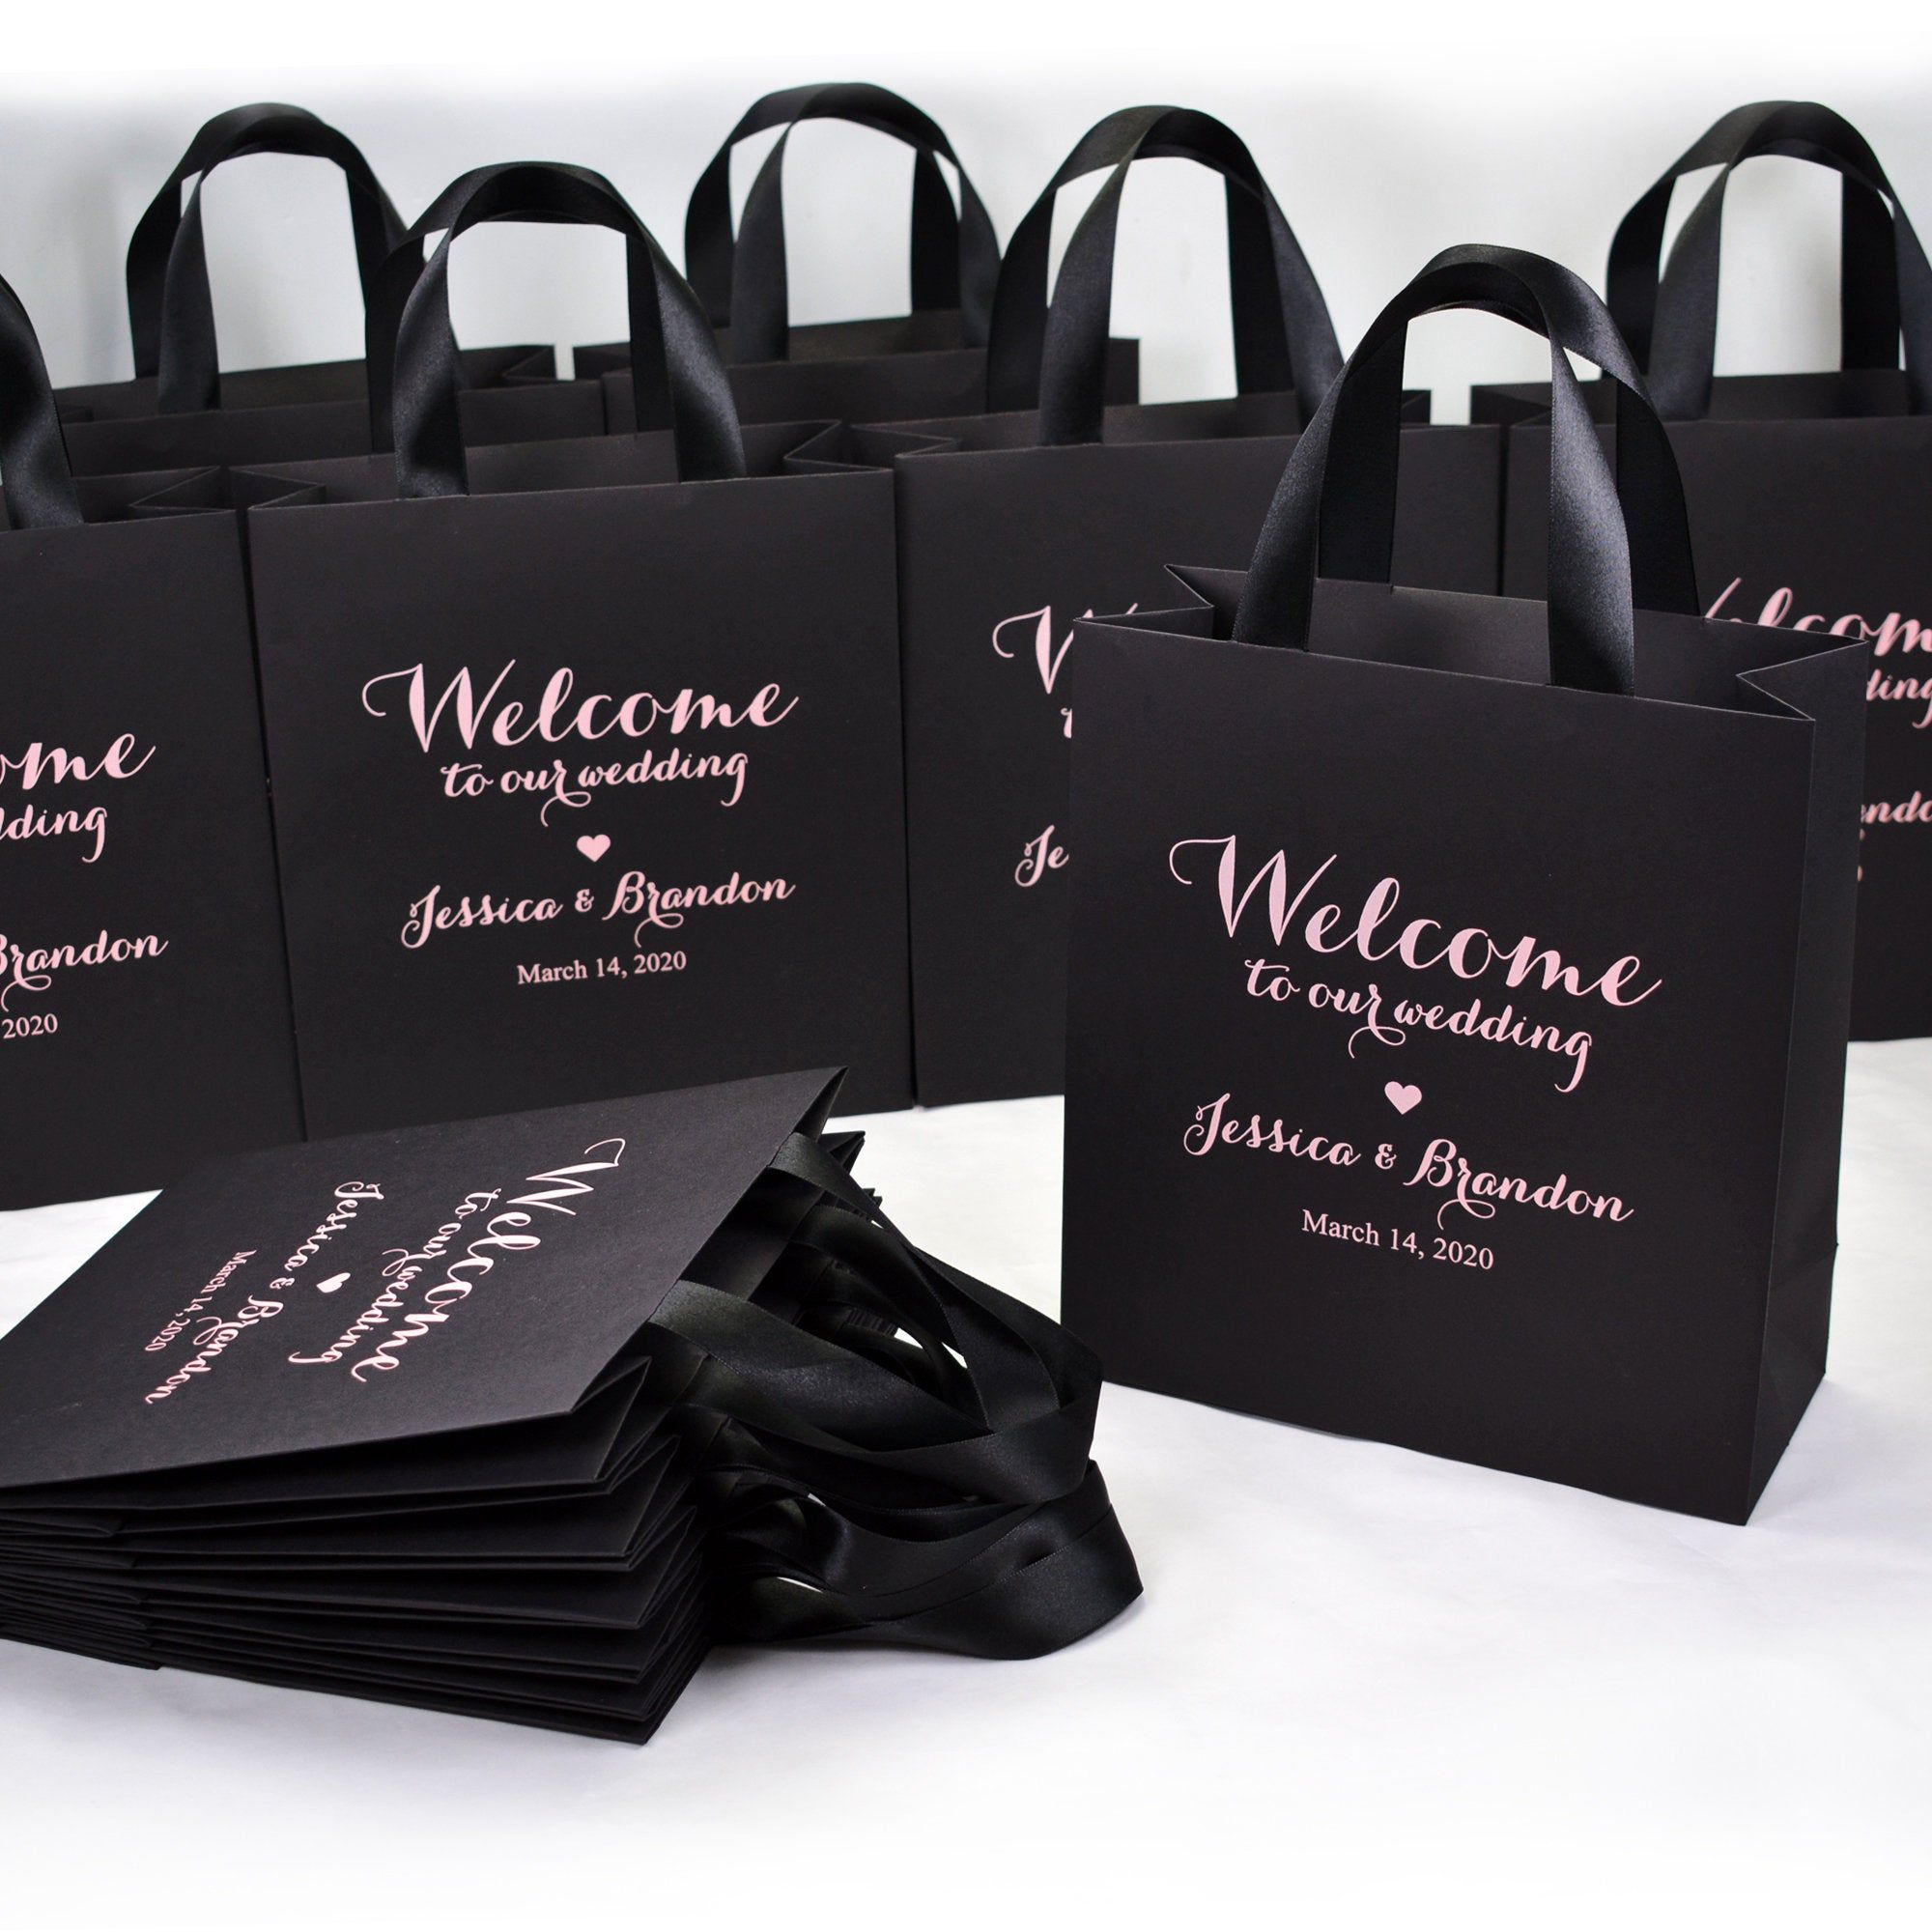 25 black blush wedding bags for favor for guests